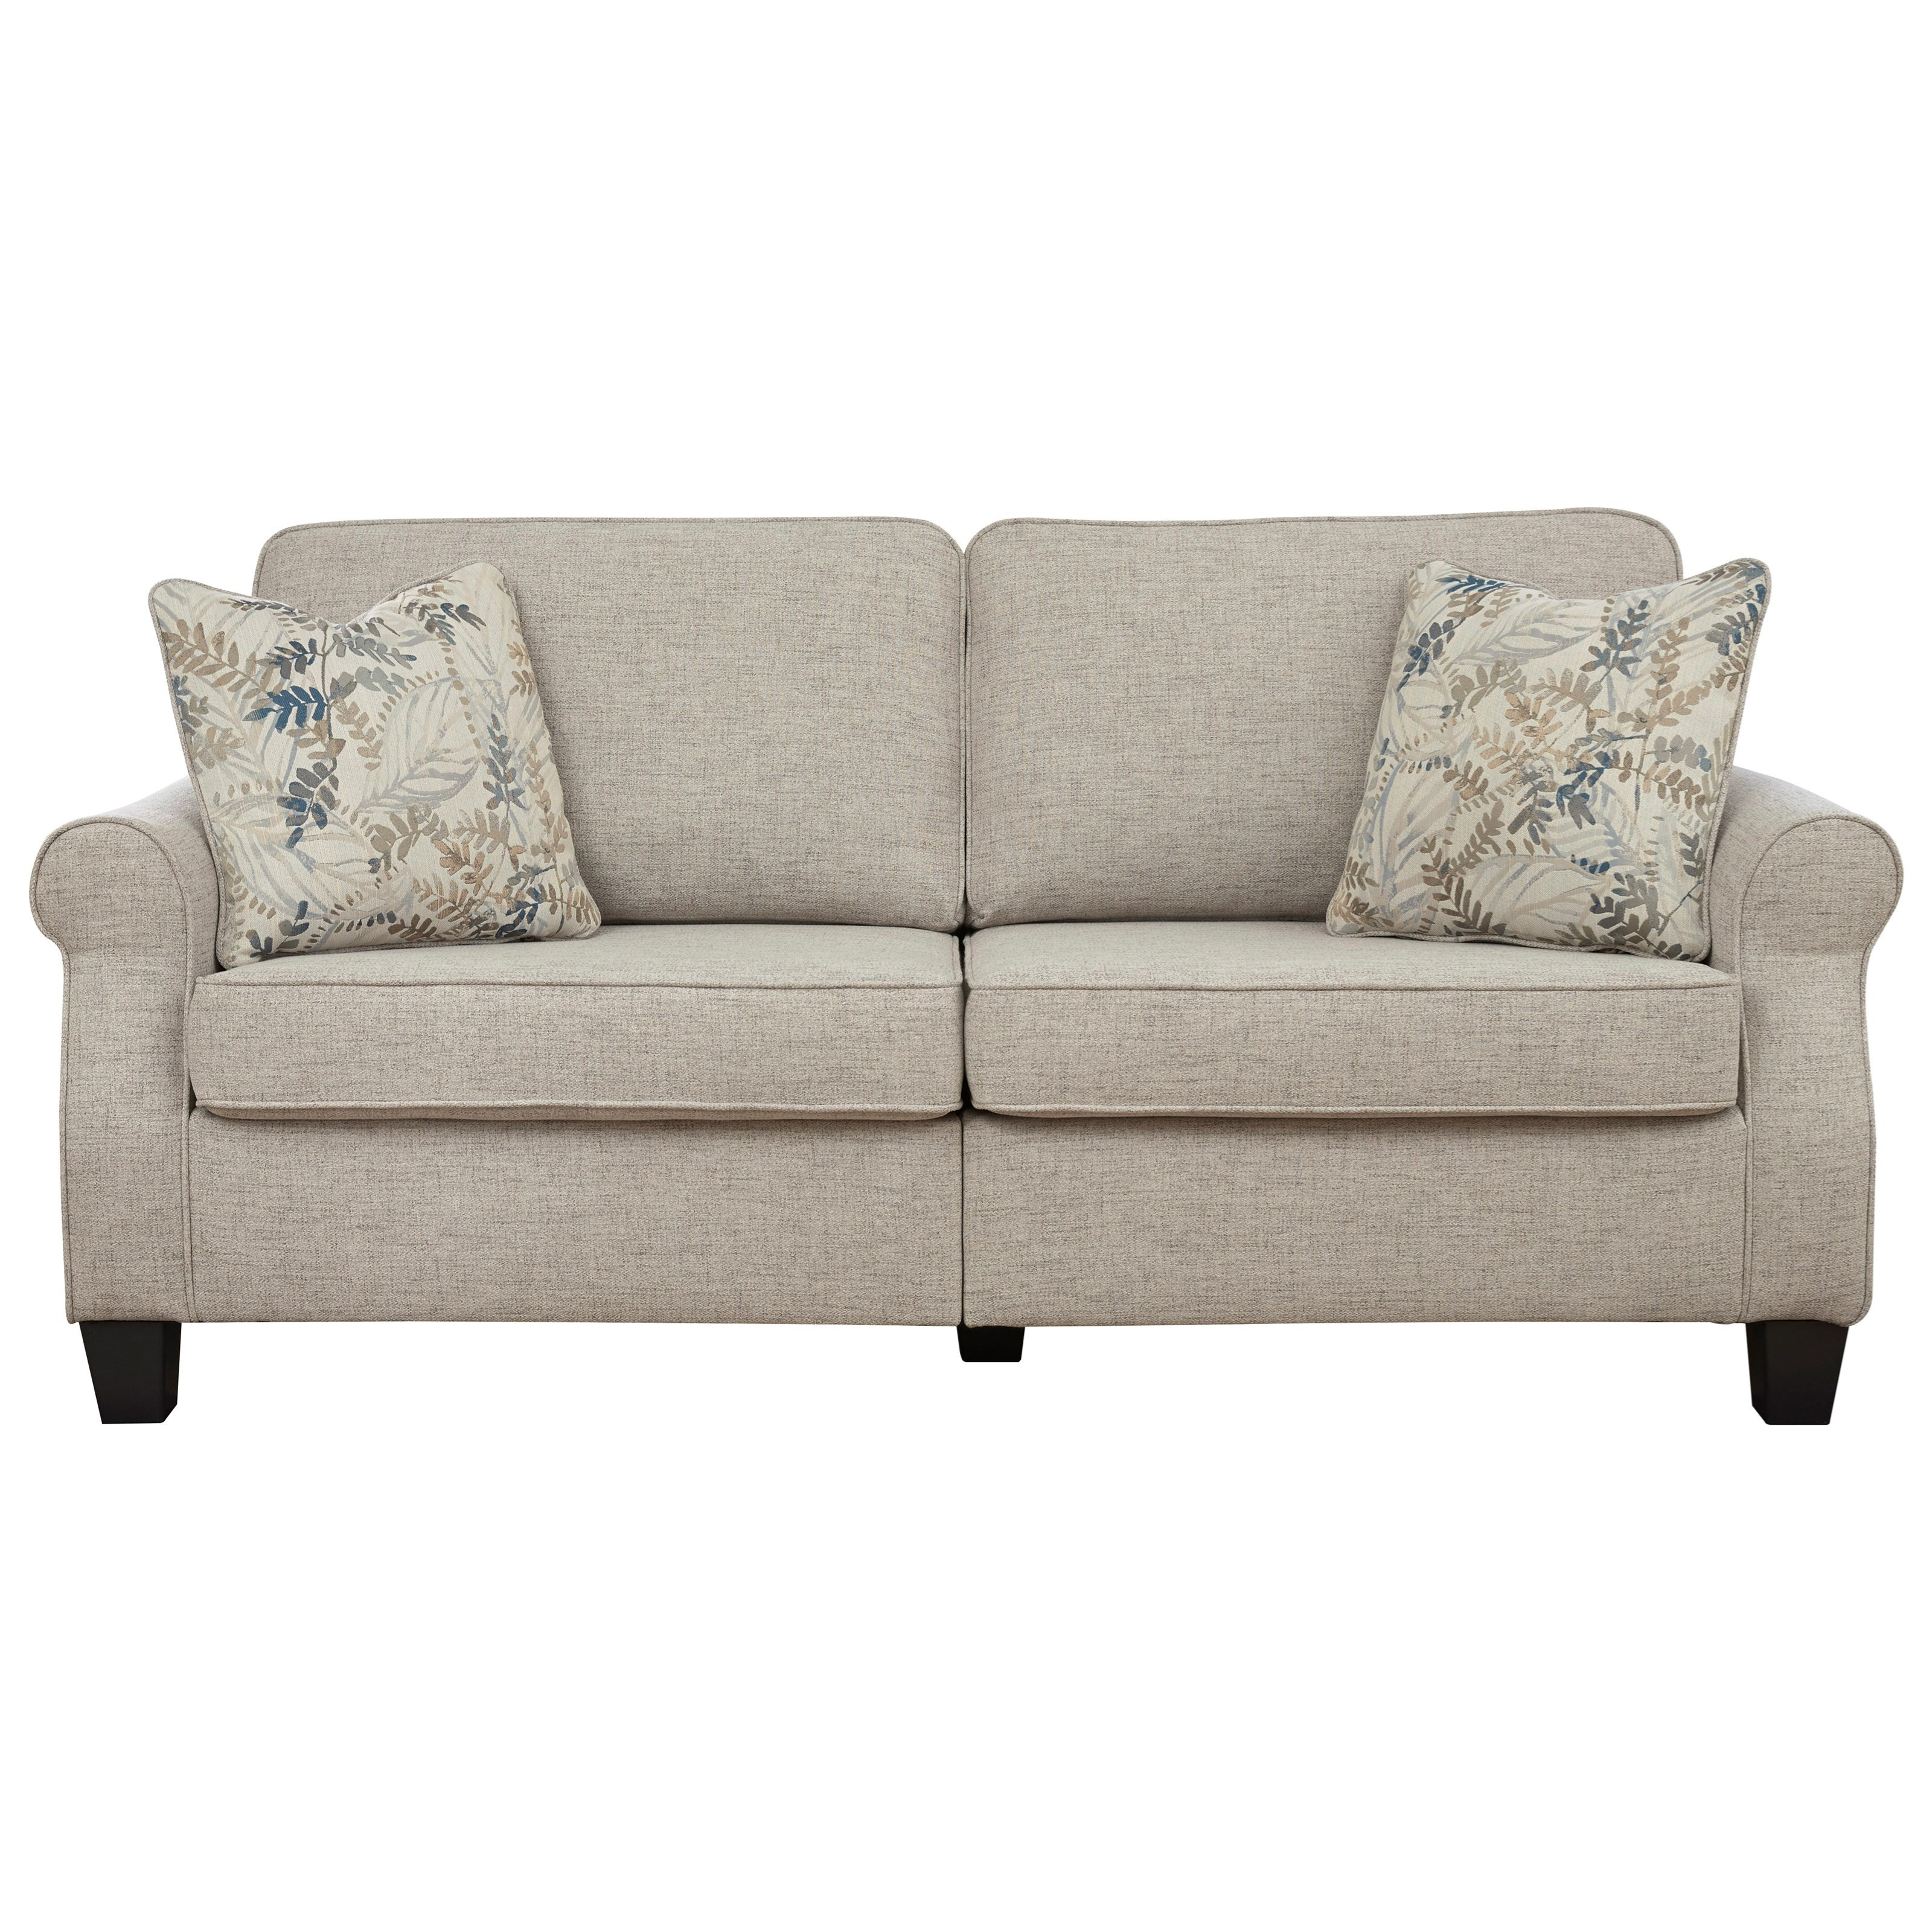 Alessio Sofa by Signature Design by Ashley at Lapeer Furniture & Mattress Center